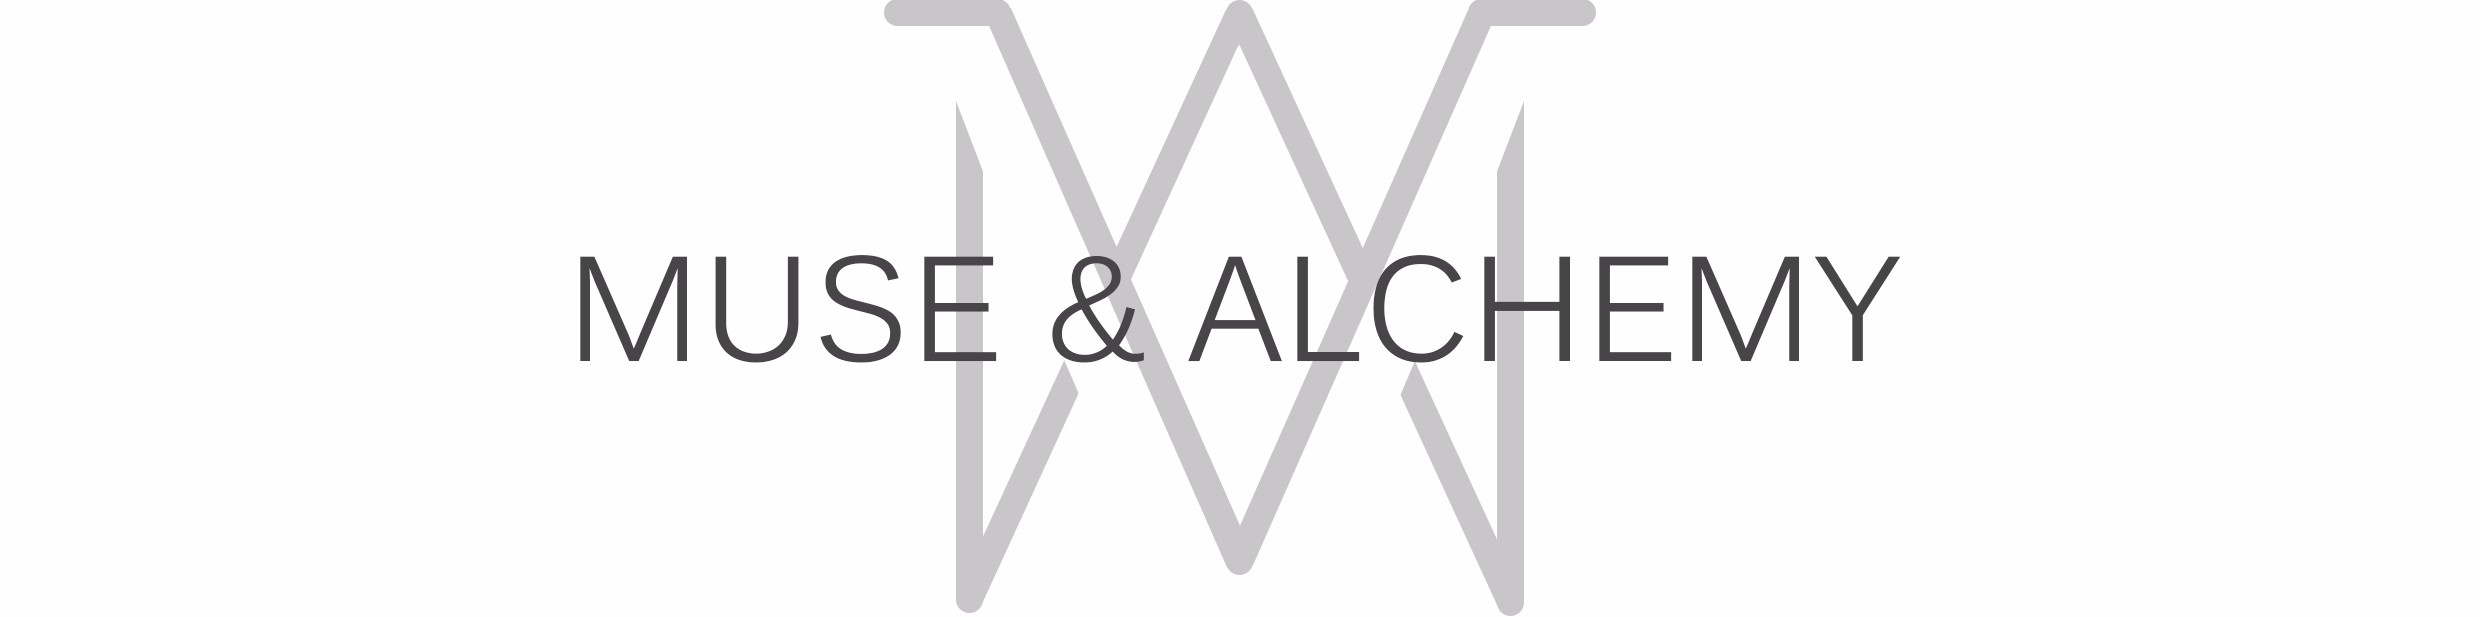 Muse and lchemy (@museandalchemy) Cover Image